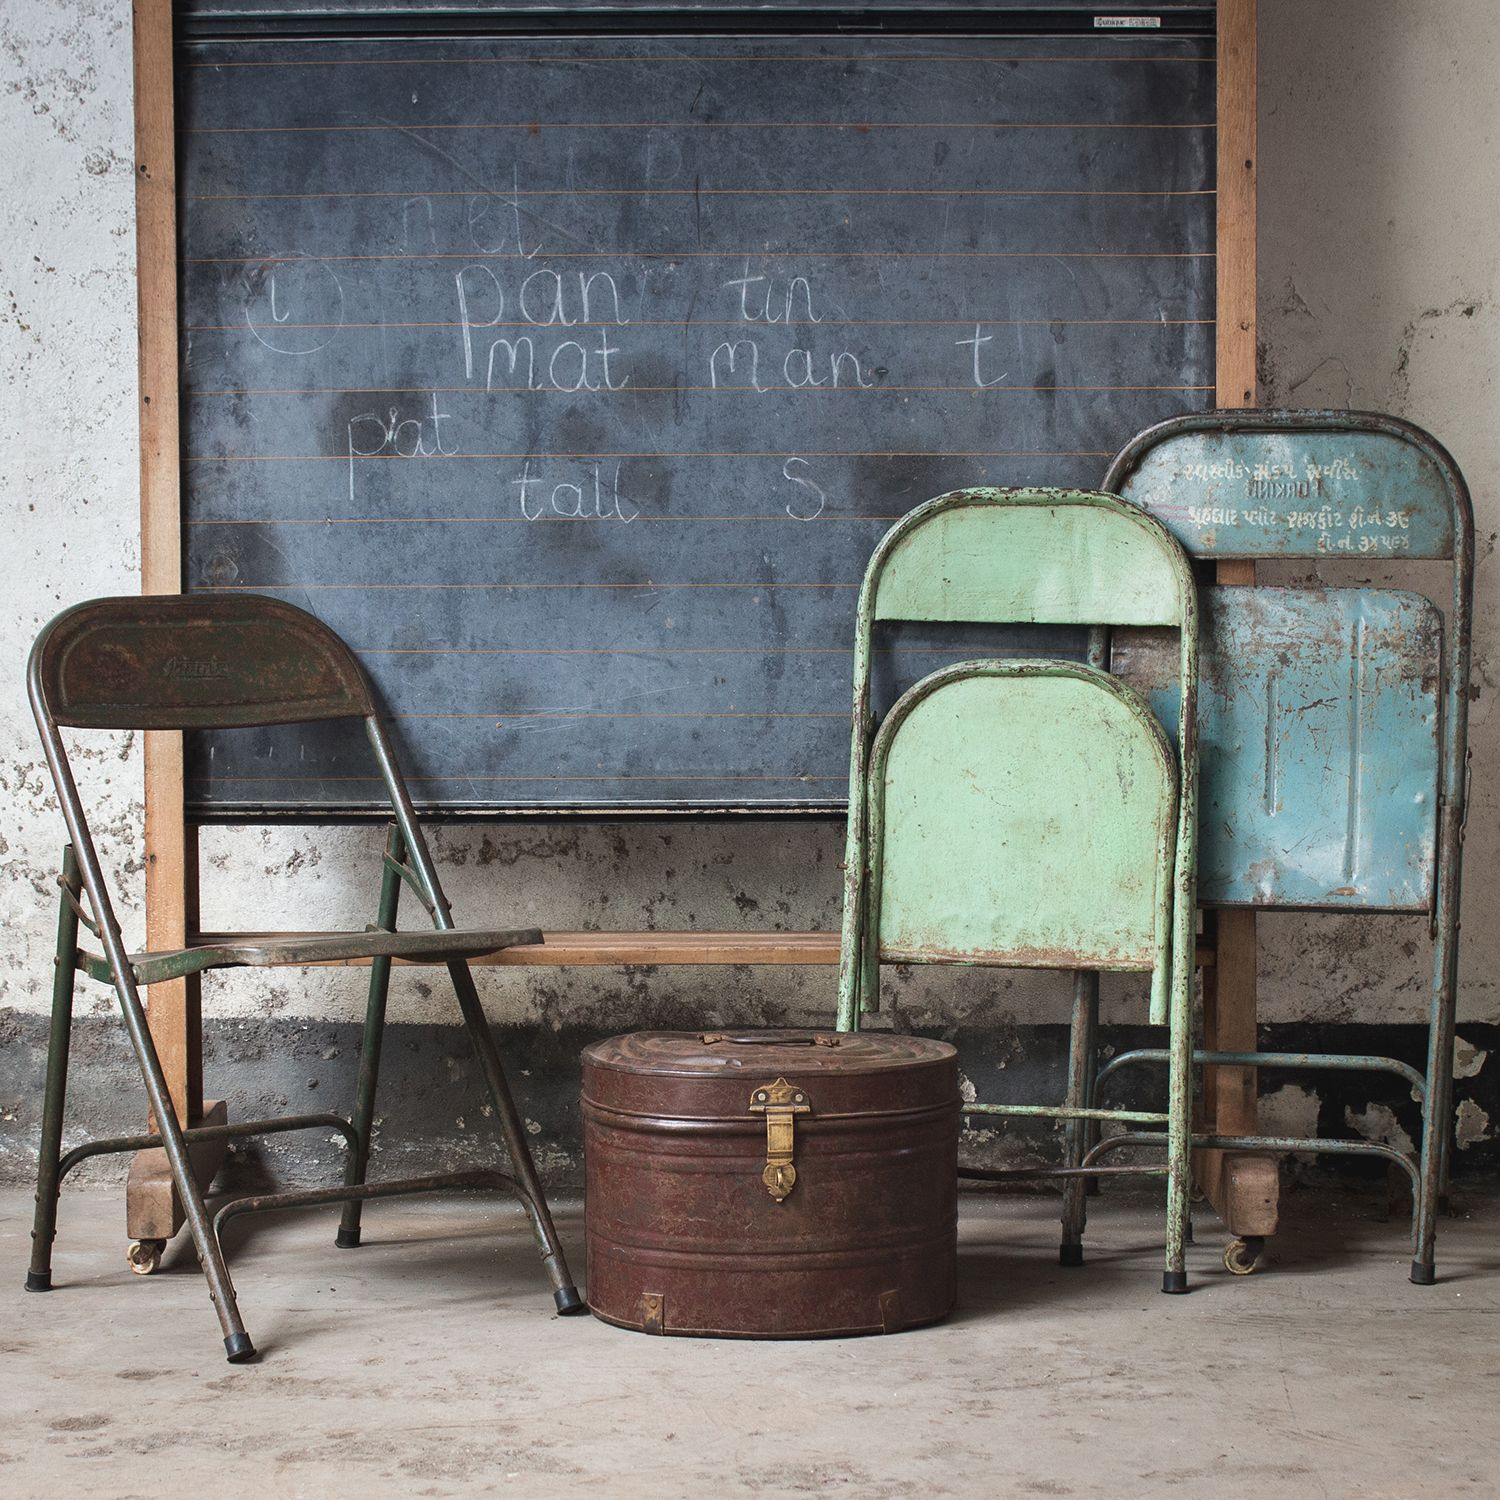 Vintage Industrial Furniture: Scaramanga's Vintage Industrial Furniture